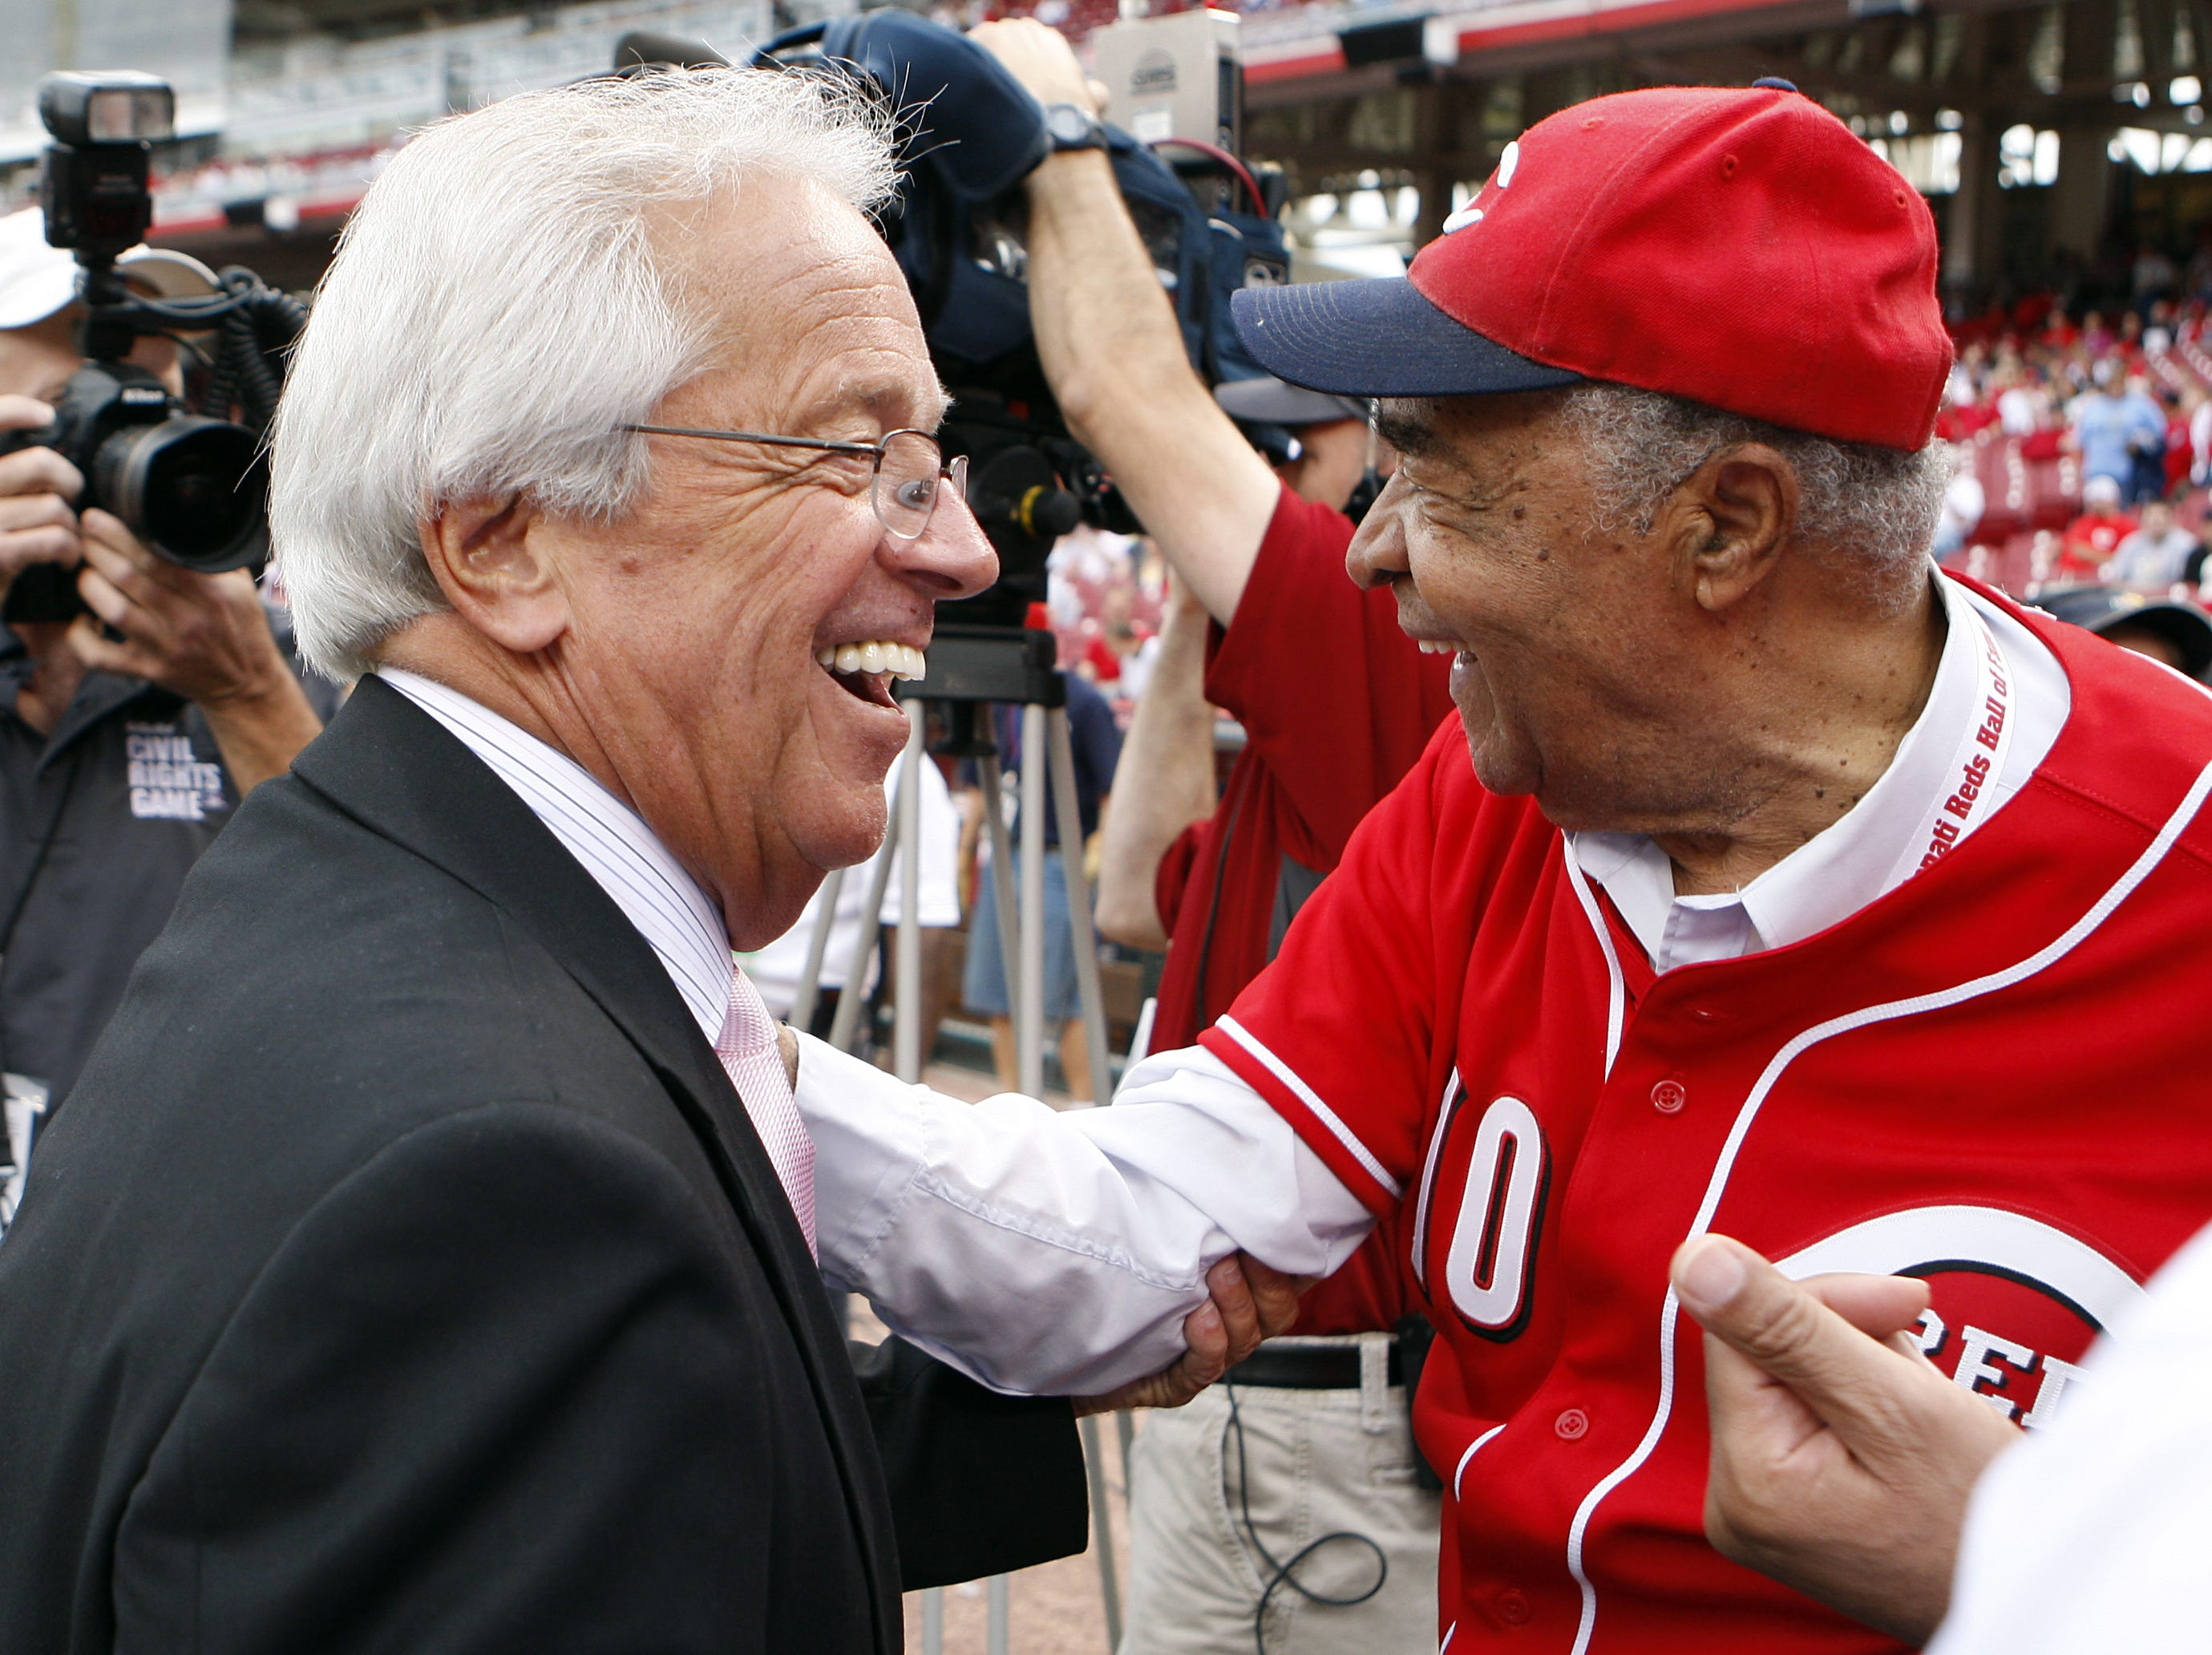 MAY 15, 2010. Reds announcer Marty Brennaman, left, and former Reds Chuck Harmon talk beforethe Civil Rights Game at Great American Ball Park. Harmon was the first African American player for The Reds.Photo shot Saturday May 15, 2010. The Enquirer/ Cara Owsley.